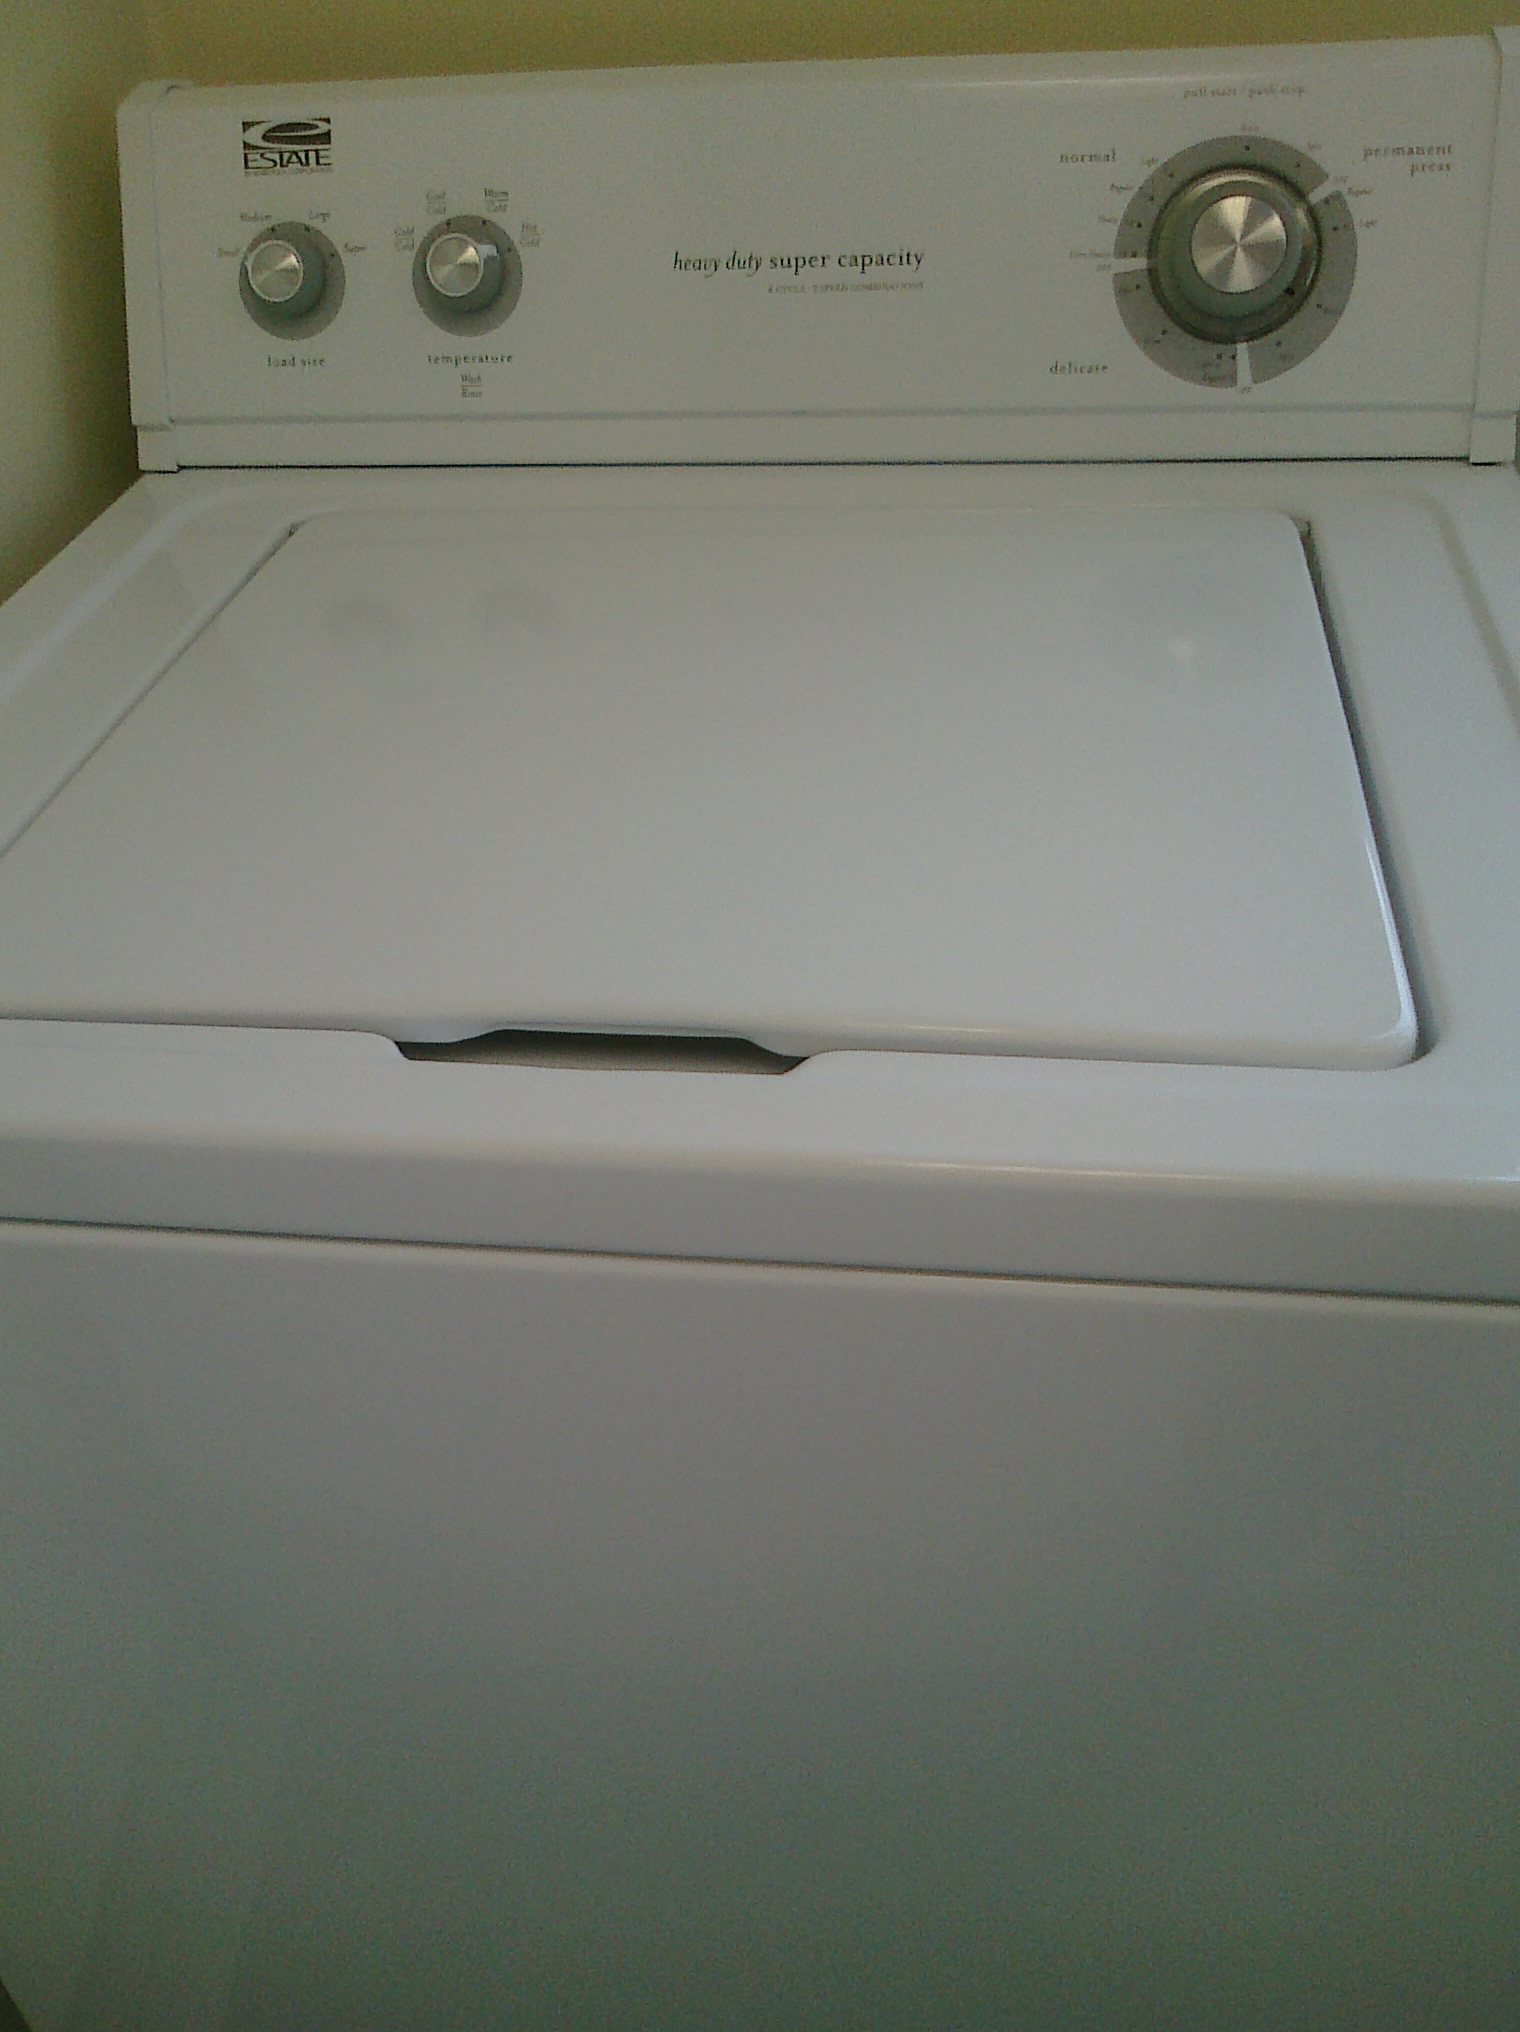 Washer Reviews Estate Washer Reviews